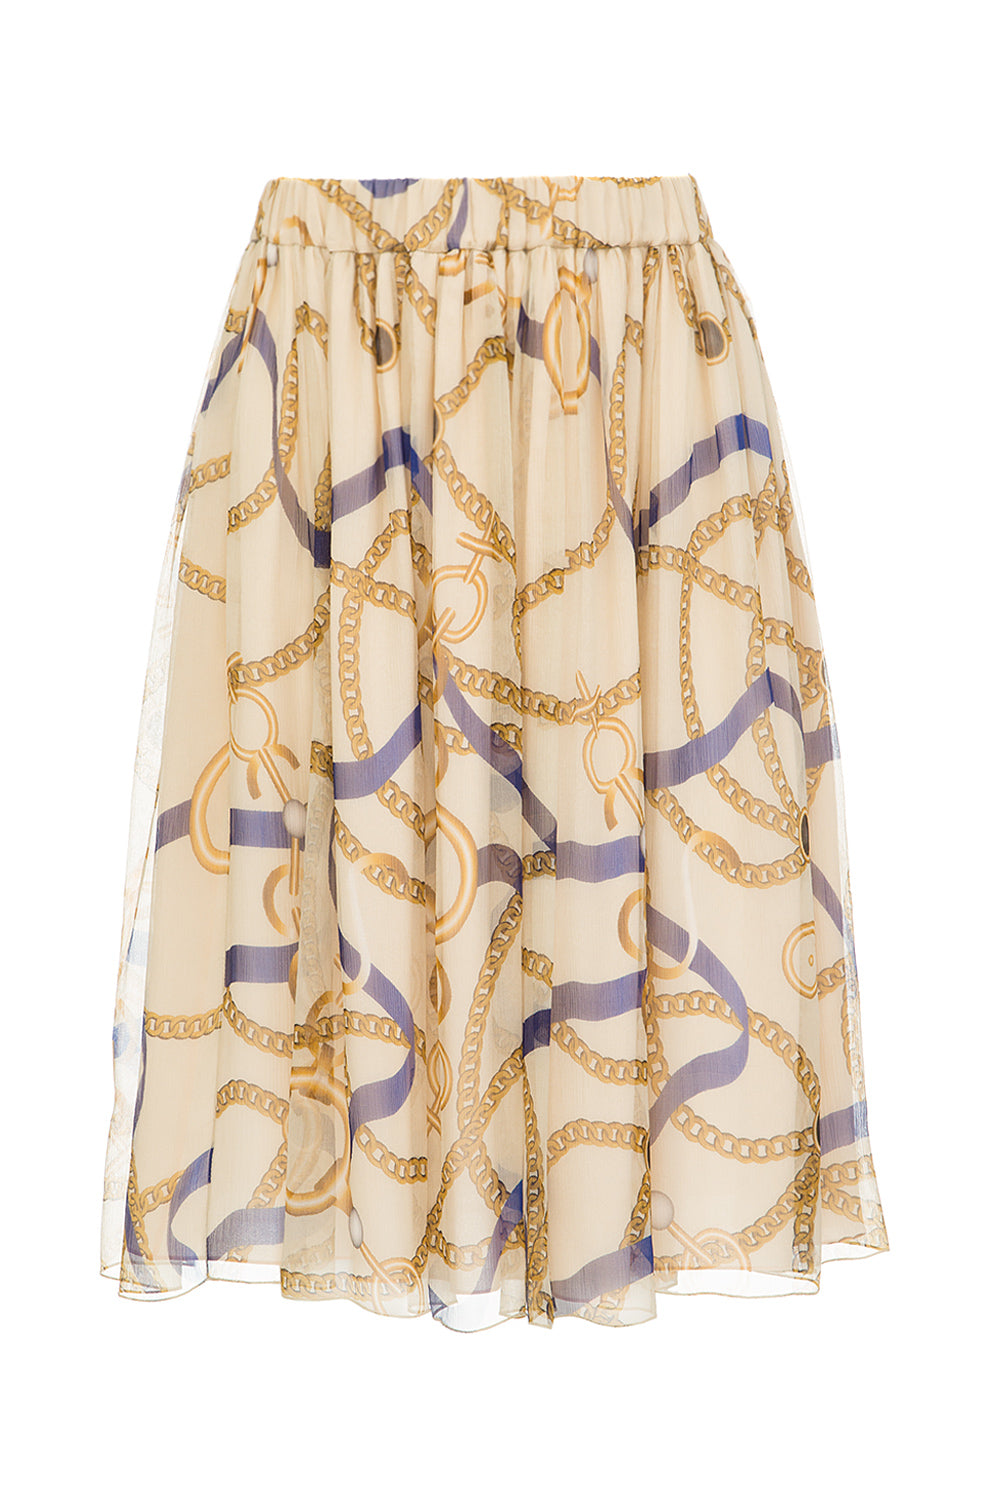 Beige silk printed skirt